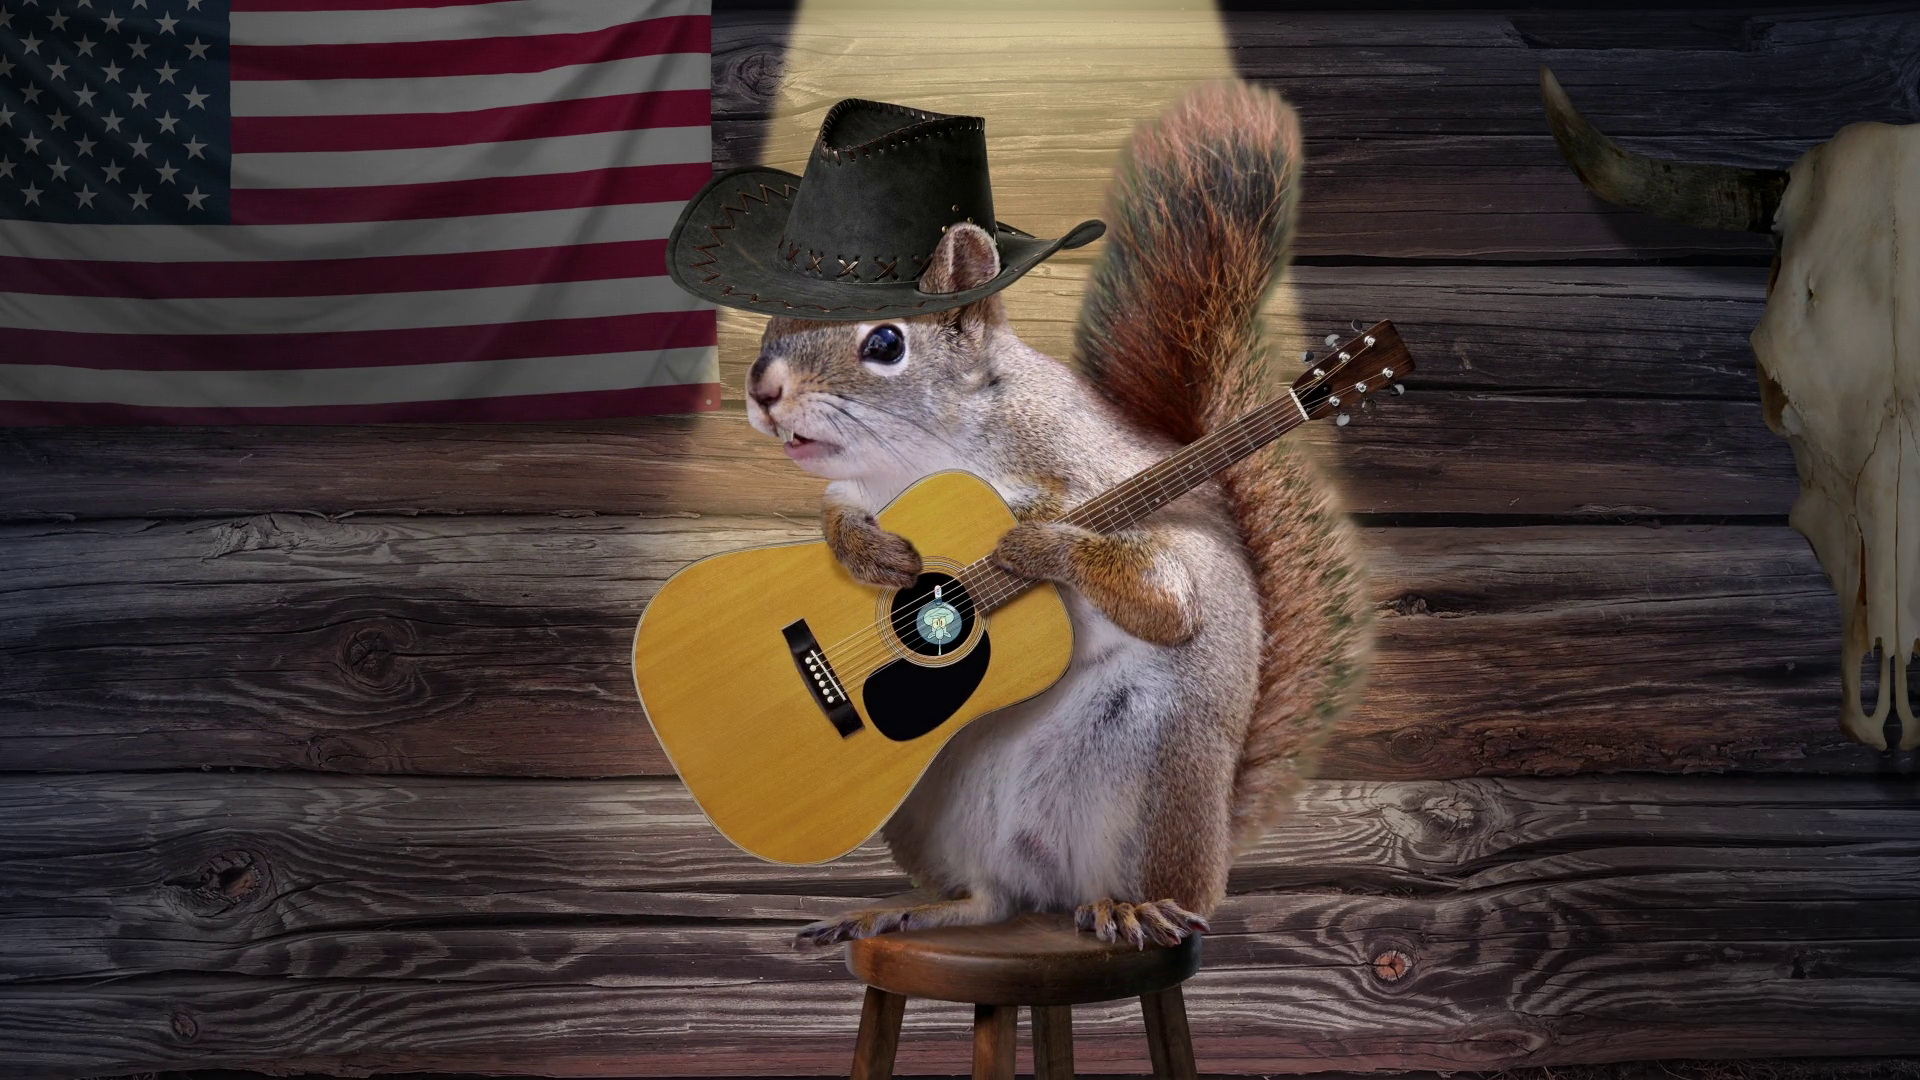 Country squirrel